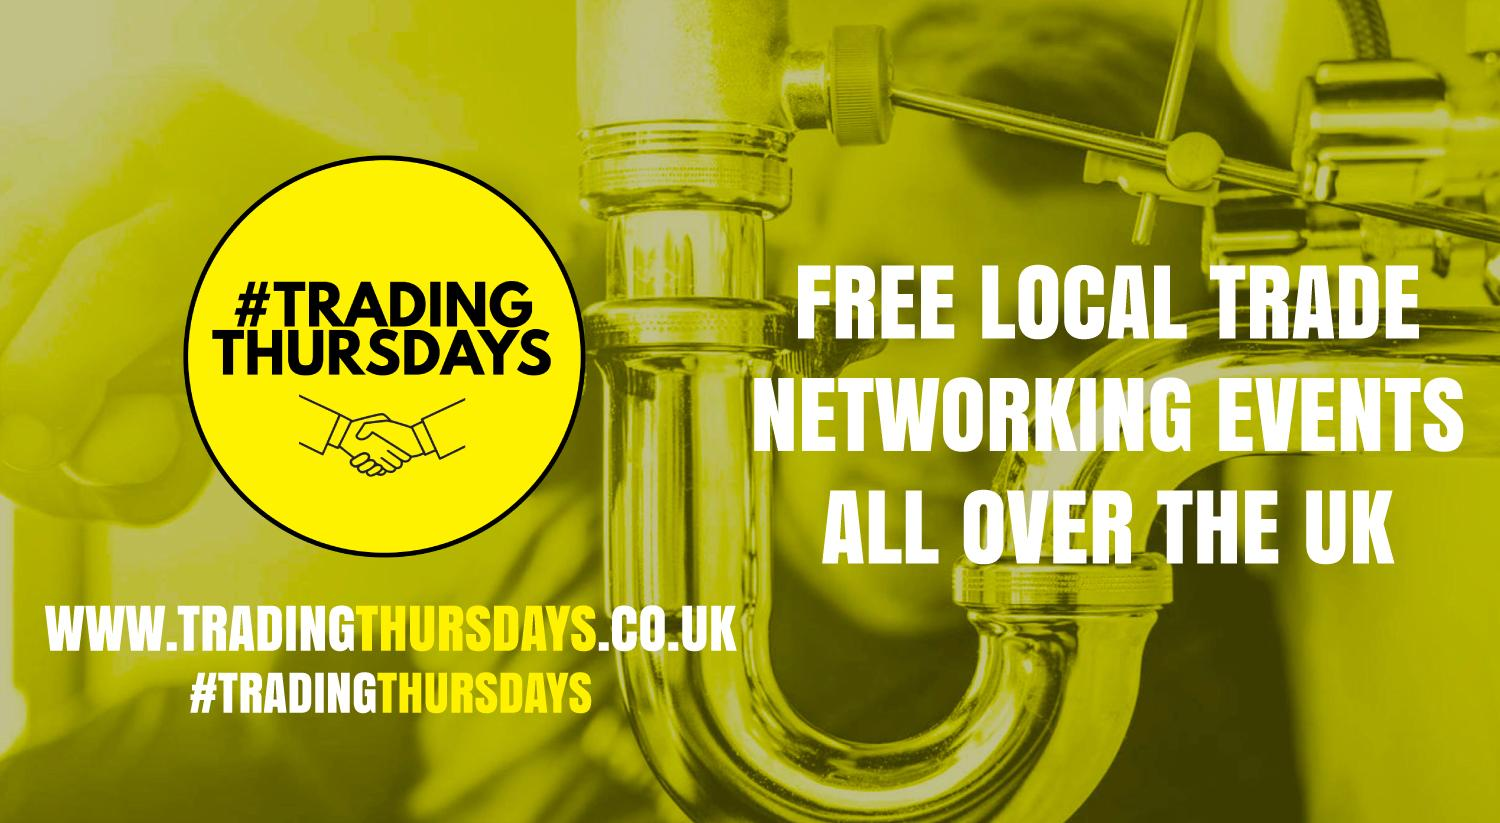 Trading Thursdays! Free networking event for traders in West Kirby